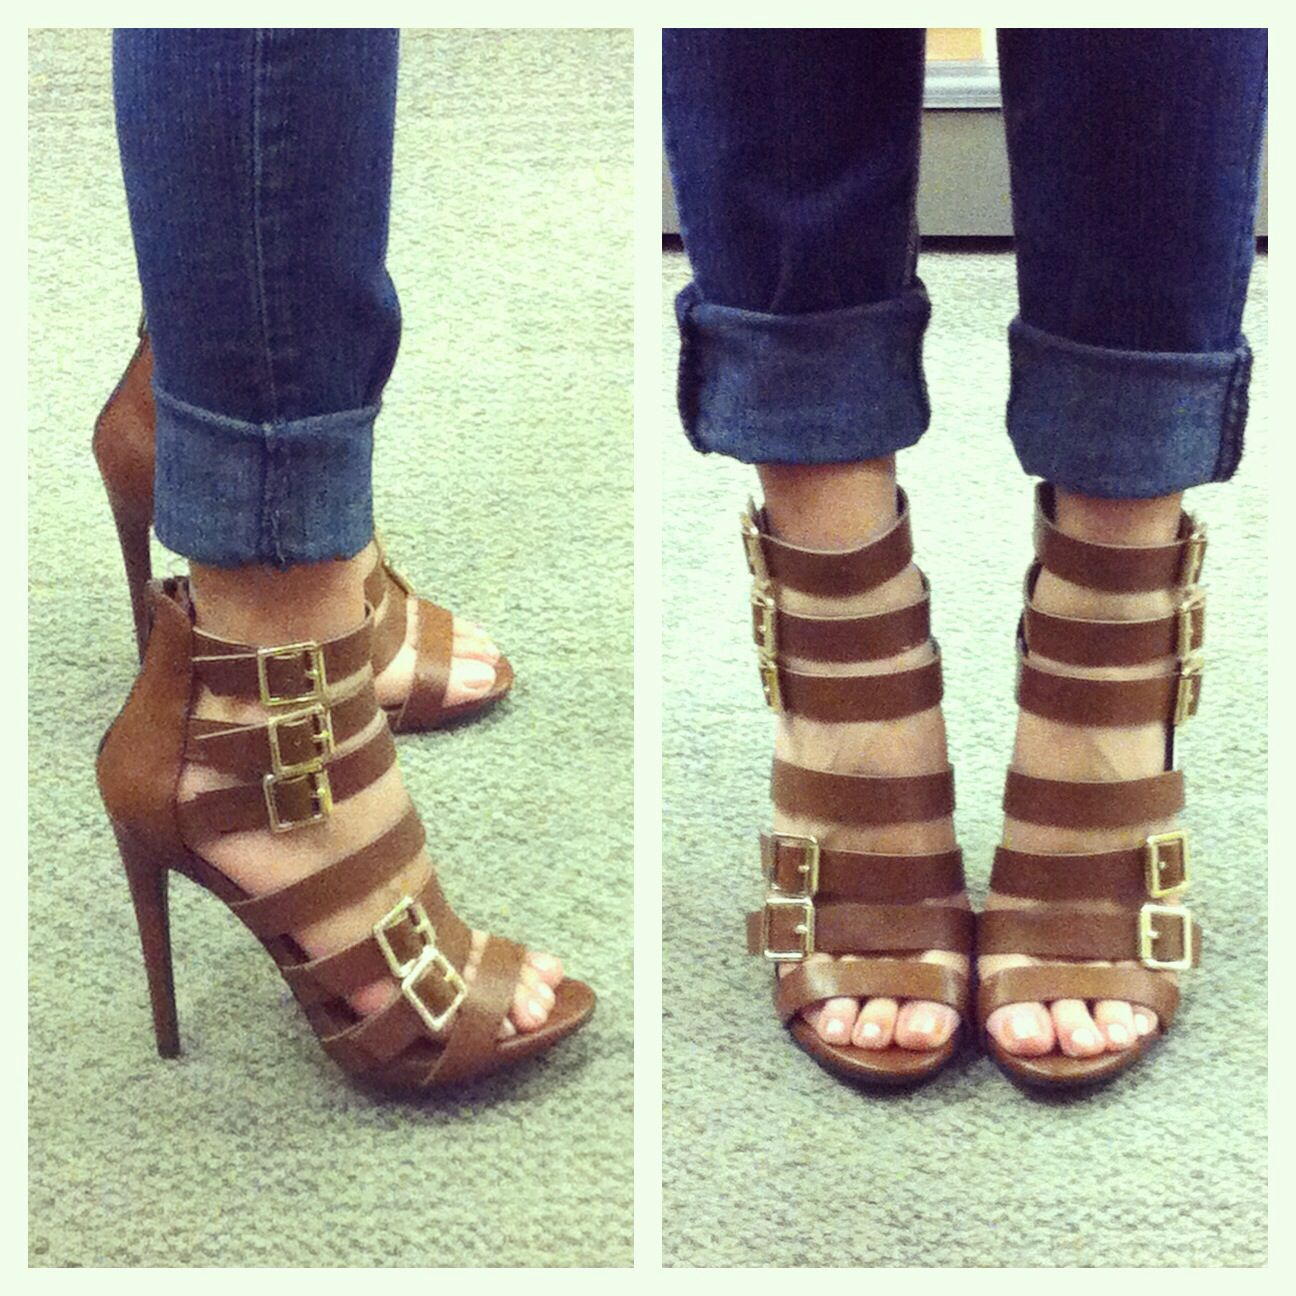 These shoes! Yes please! Ready for strappy sandal weather. Target does it  again